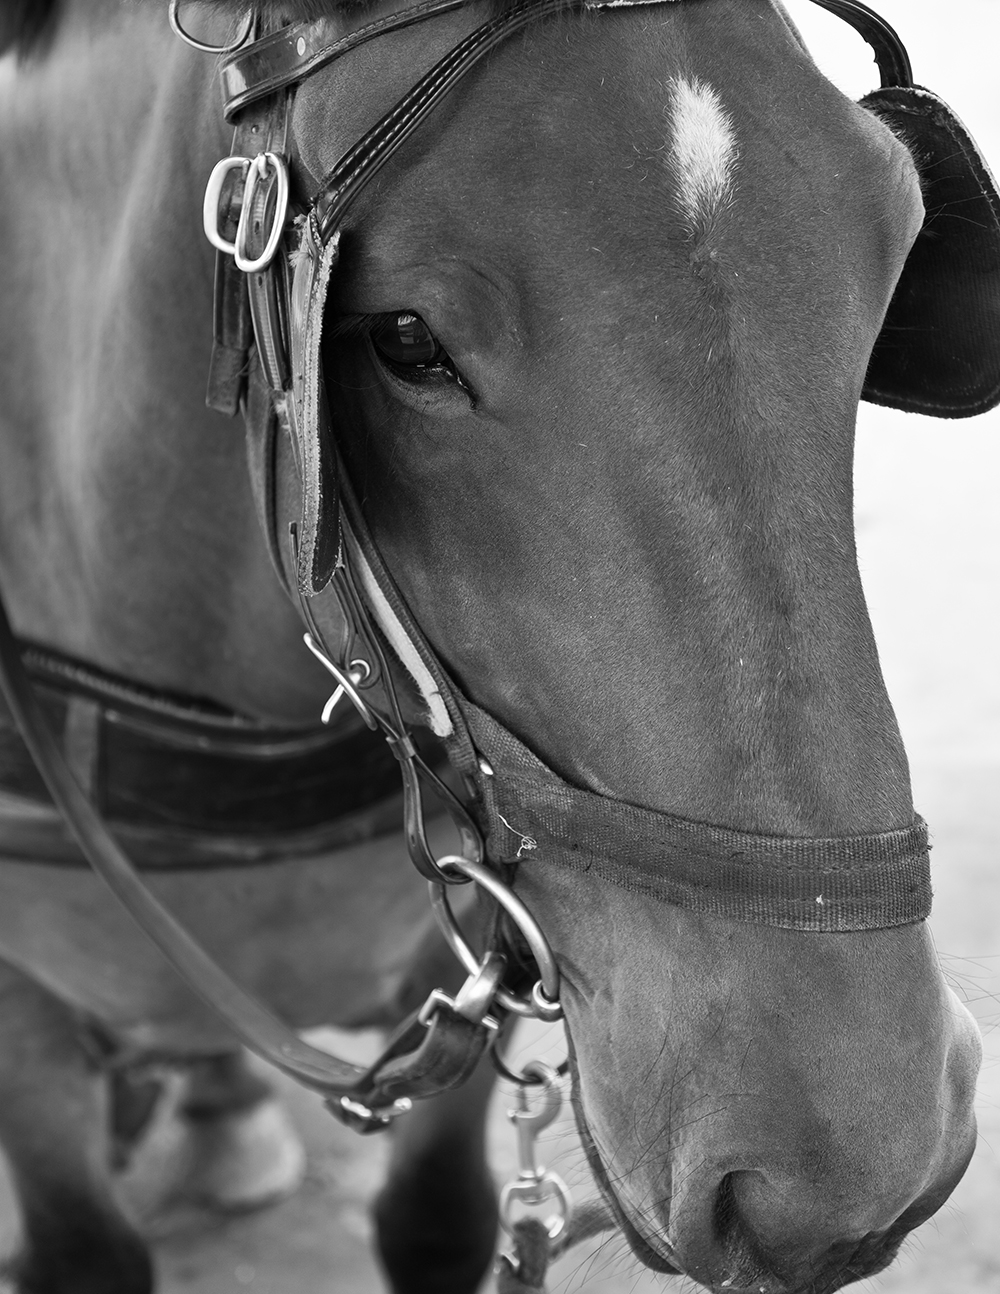 The Long Face of Equanimity